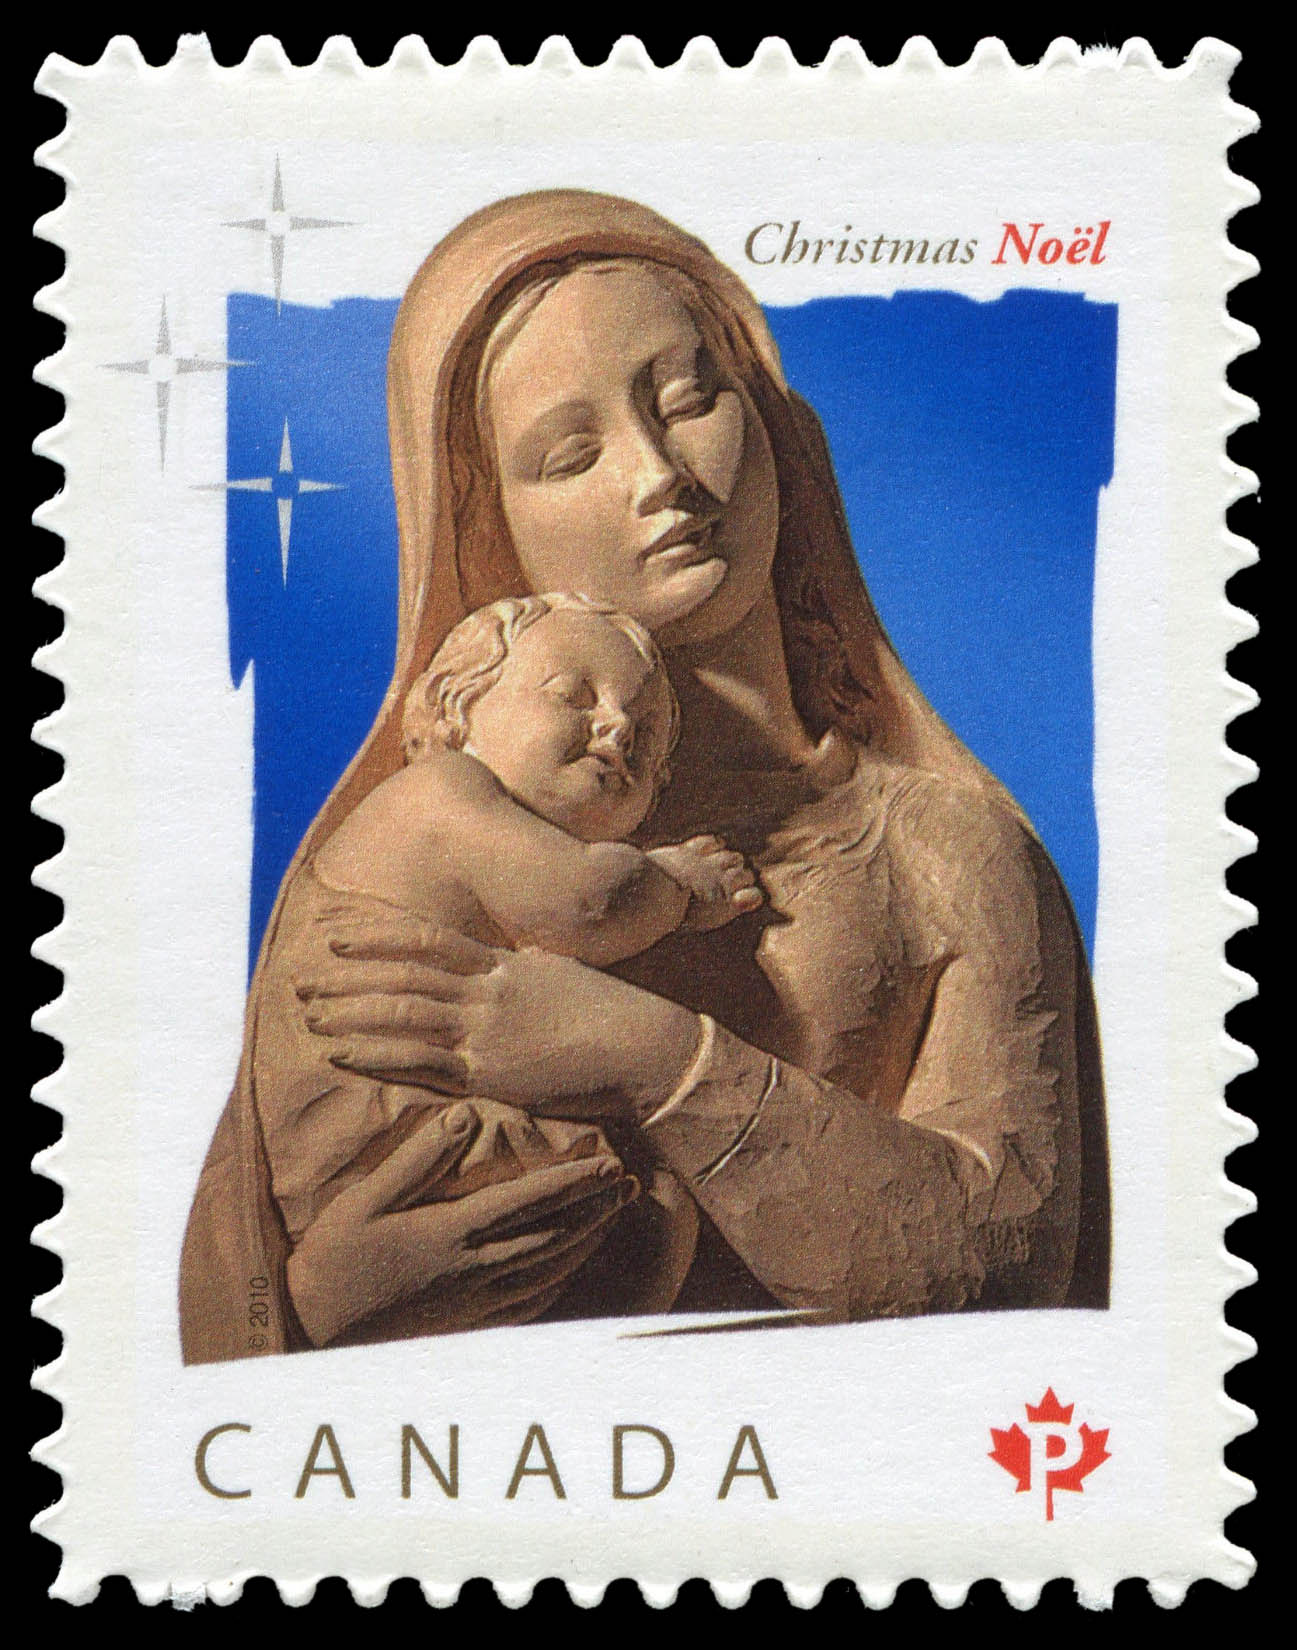 Madonna and Child Canada Postage Stamp | Christmas 2010